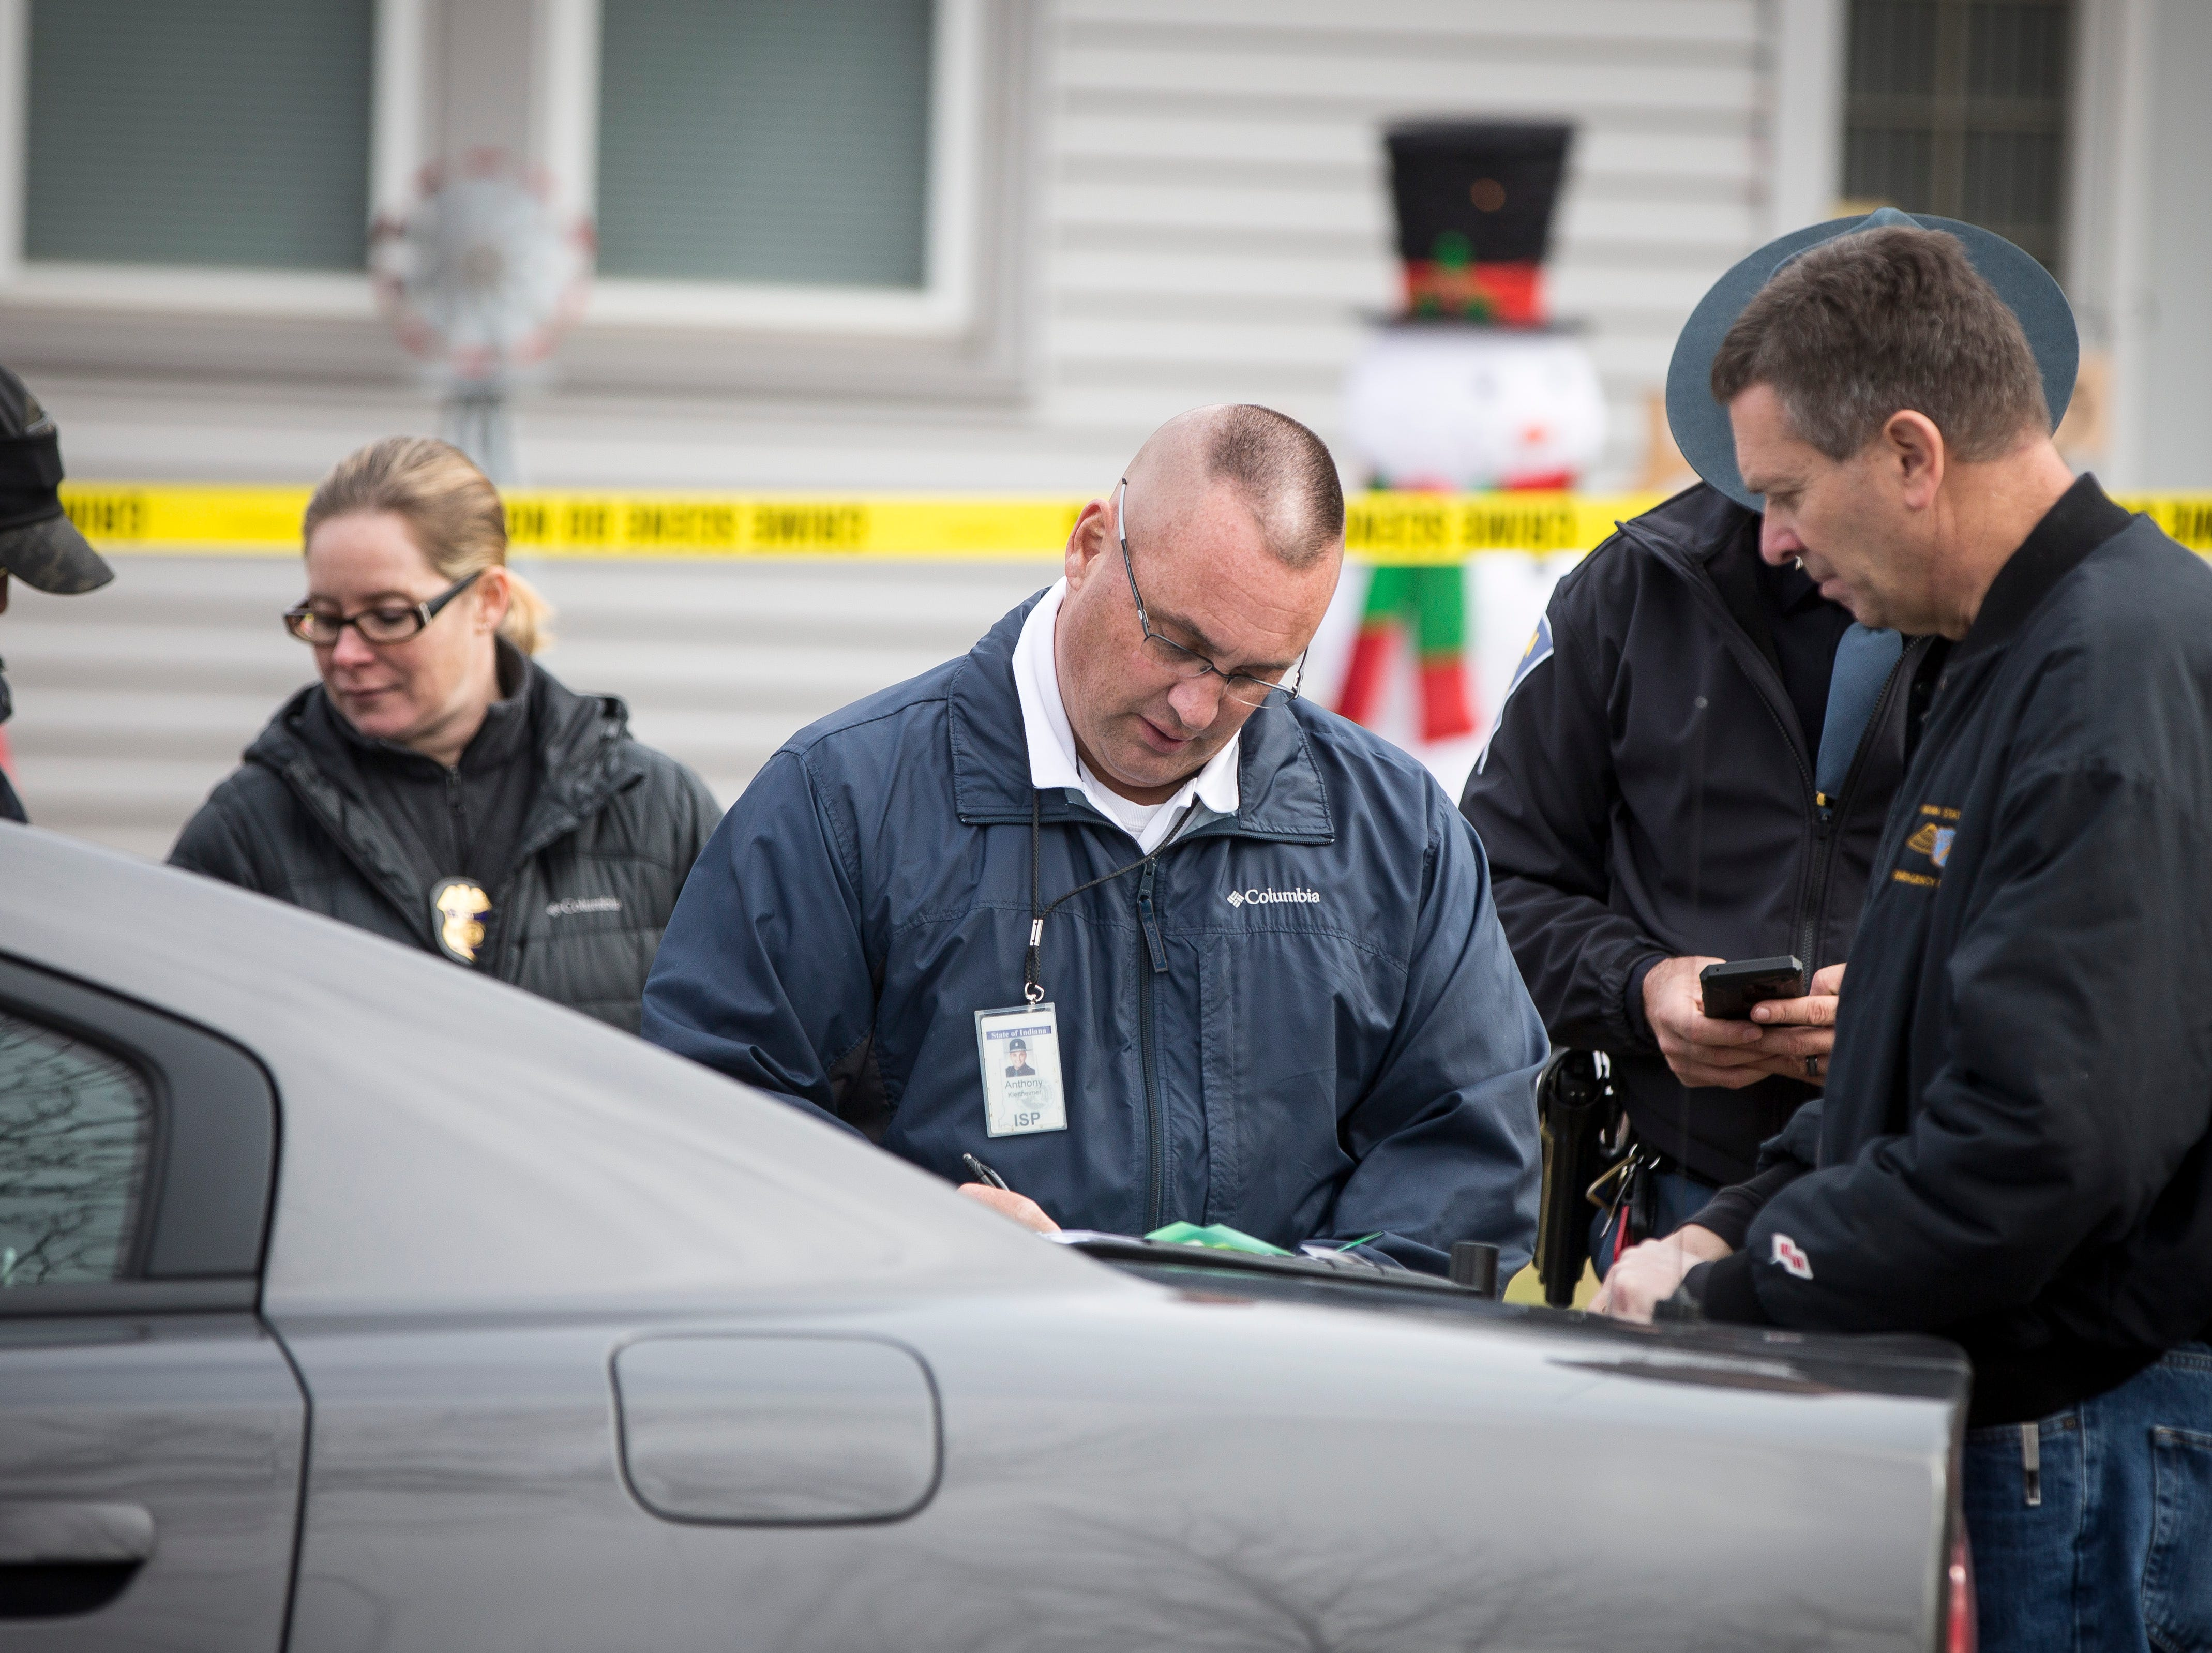 Police enter the residence at the 100 block of S.W. 16th St. with a search warrant related to the active shooter at Dennis Intermediate School on Thursday morning. While no one was injured at the school, the teenage suspect took his own life after an altercation with police.